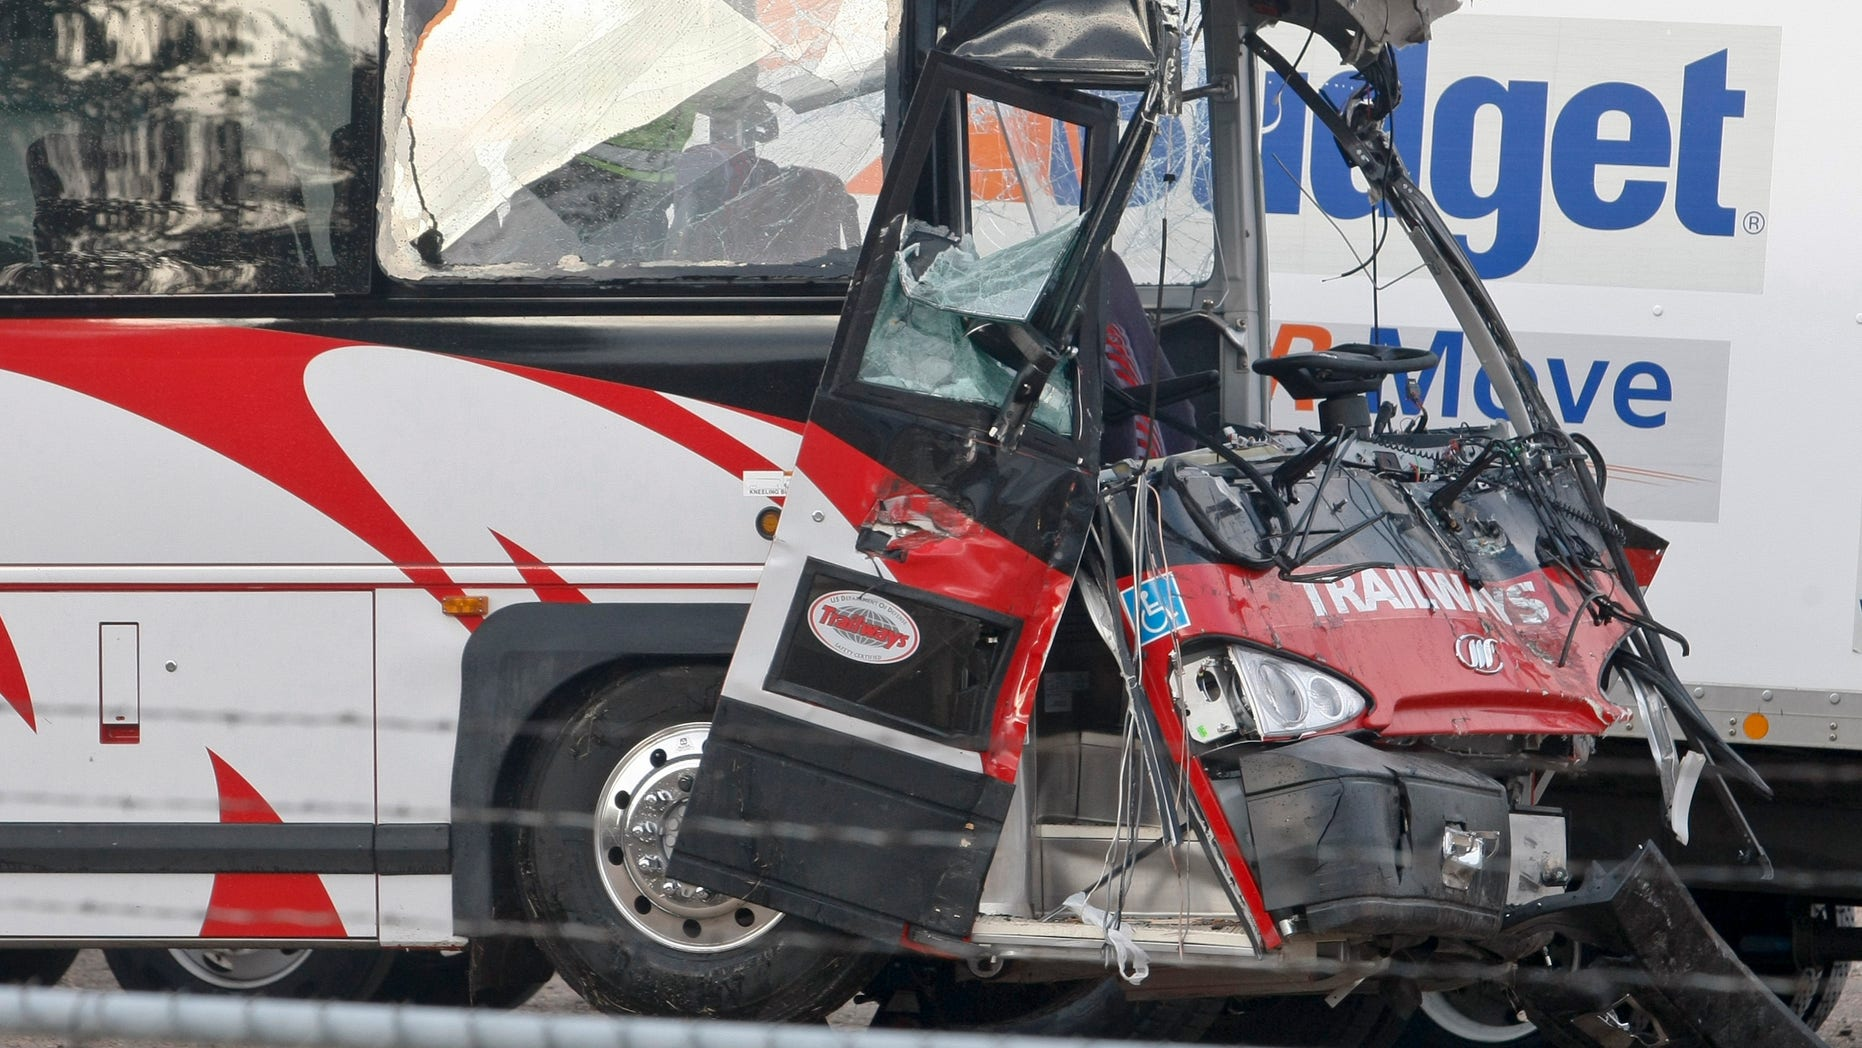 A Burlington Trailways bus is seen at the Kearney police lot in Kearney, Neb., Thursday, Oct. 6, 2011. Five people were treated at hospital after the Denver-bound bus rammed into an overturned semitrailer on Interstate 80 near Gibbon, Neb., early Thursday. The Nebraska State Patrol says 41 people were taken to a hospital in Kearney, where 30 people had been treated and released. Of the five admitted, one was in critical condition and one was in serious condition. The other passengers spent about two hours at an American Red Cross shelter until the bus operator could get another bus there.